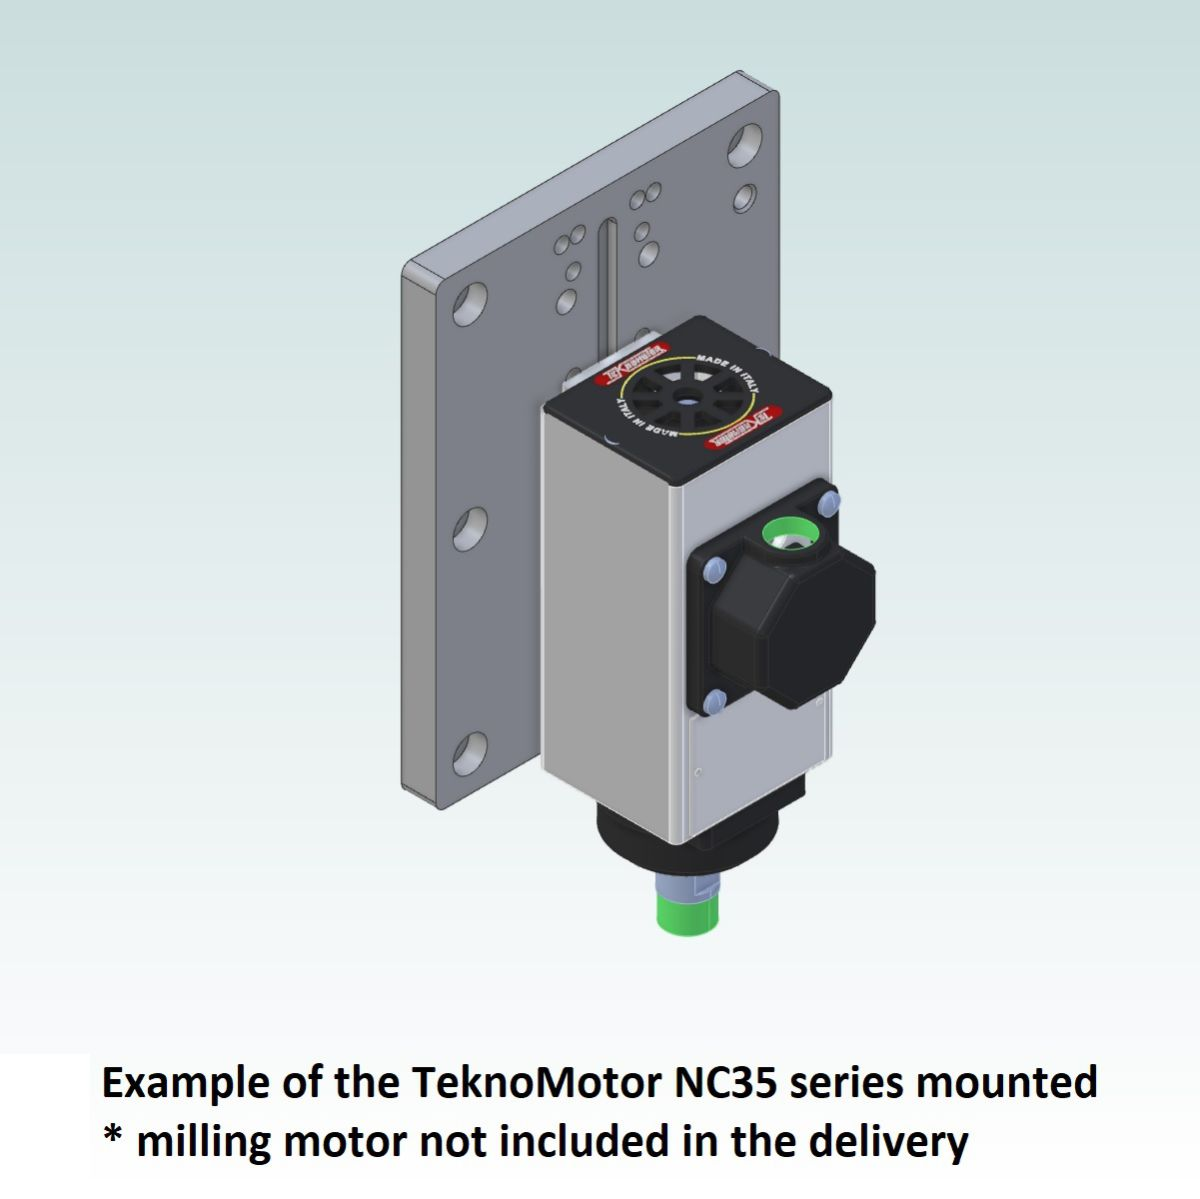 8996 teknomotor mountplate for 40x160 profile with nc35 mounted